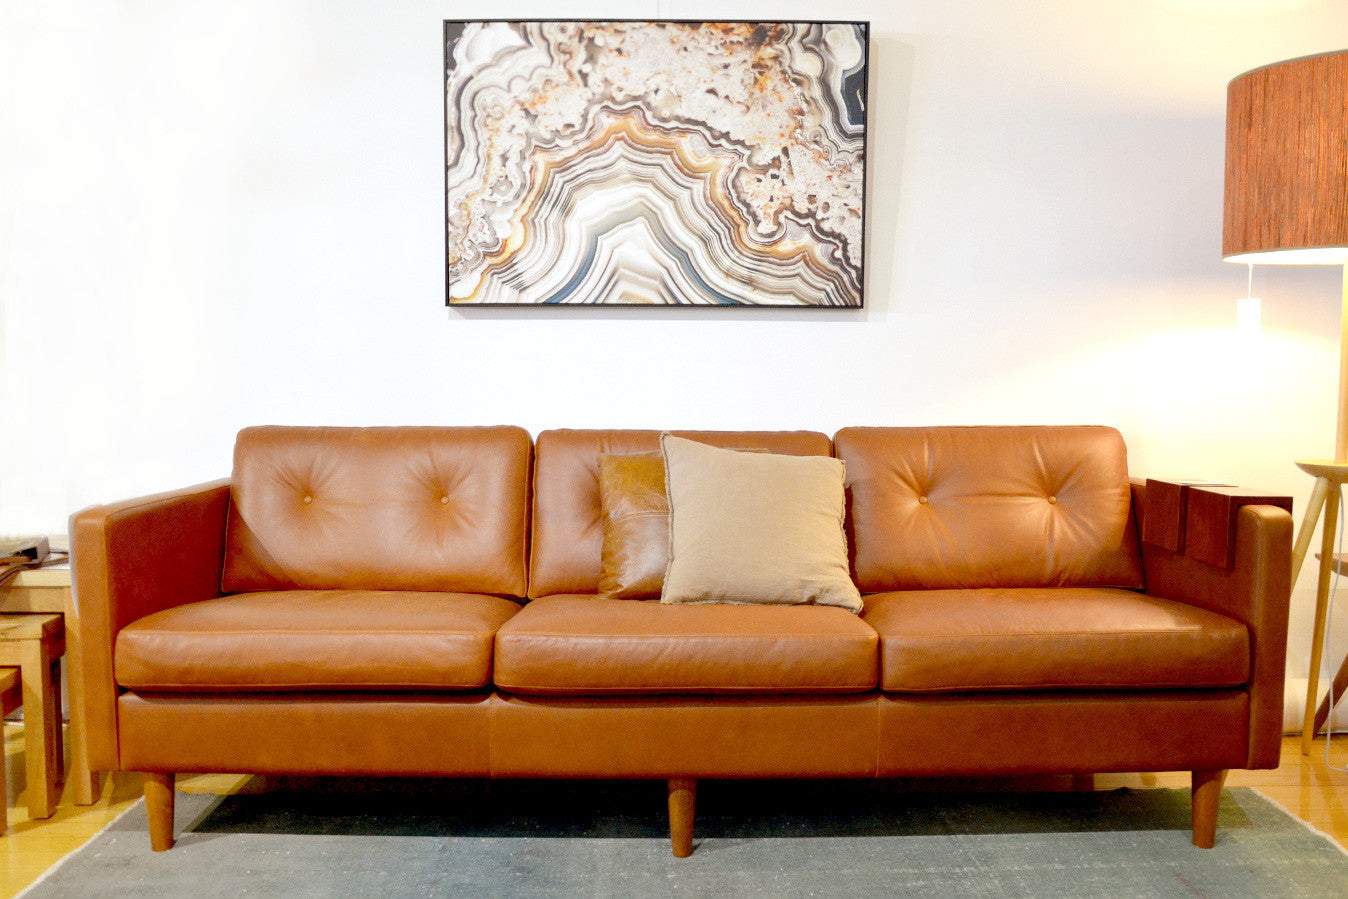 Svensen Retro Mid Century Aniline Leather Couch Sofa Bespoke  ~ Tan Leather Mid Century Sofa